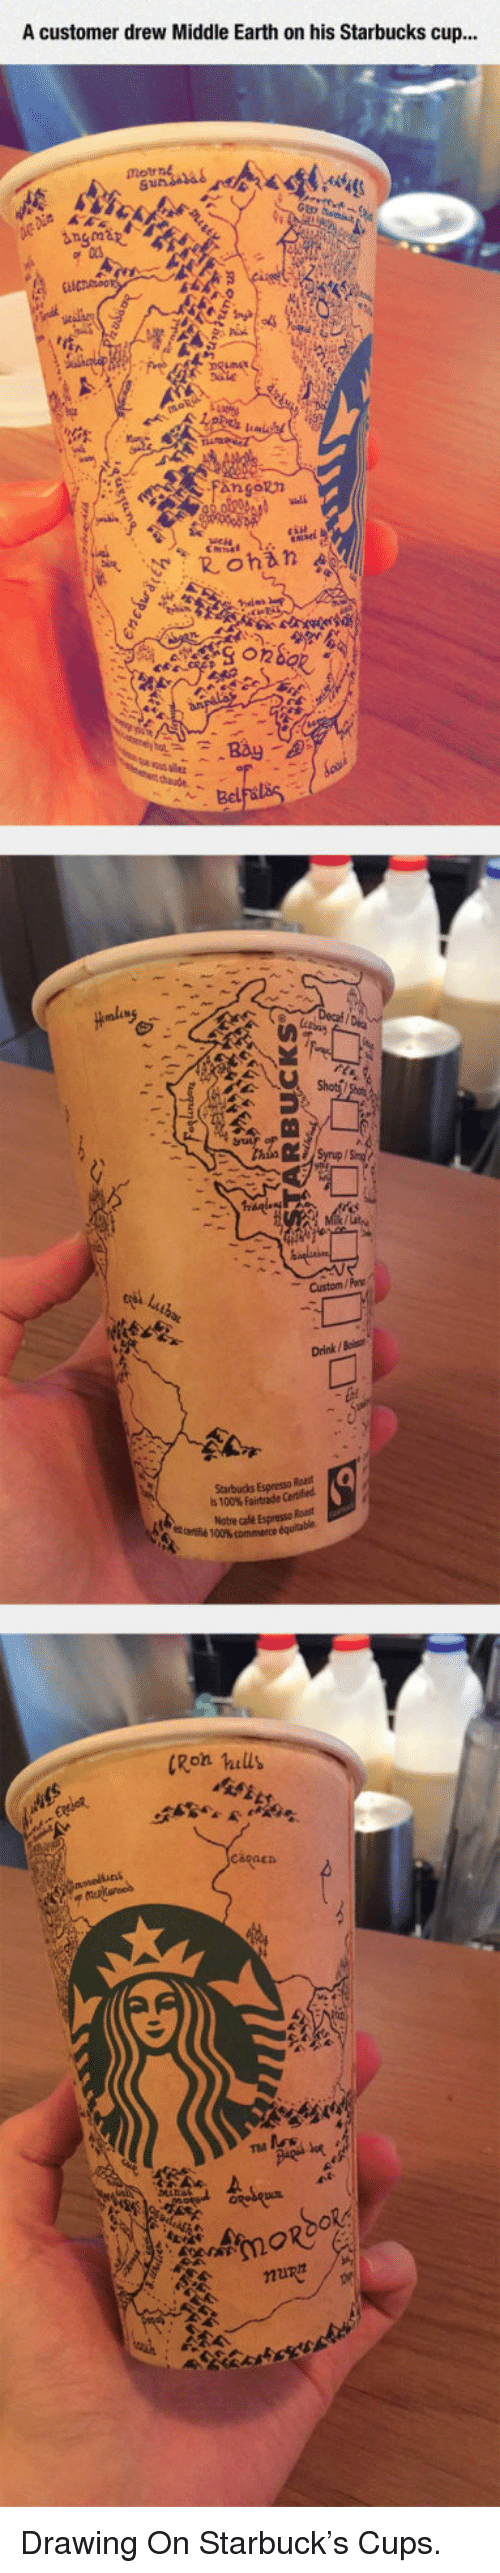 middle earth: A customer drew Middle Earth on his Starbucks cup...  ous alet  Custom/Pes  Drink / Boiss  0  Starbucks Espresso Roas  is 100% Fairtrade Cette  thé 100%commerce  ale Espresso Rast  Ron hills <p>Drawing On Starbuck's Cups.</p>